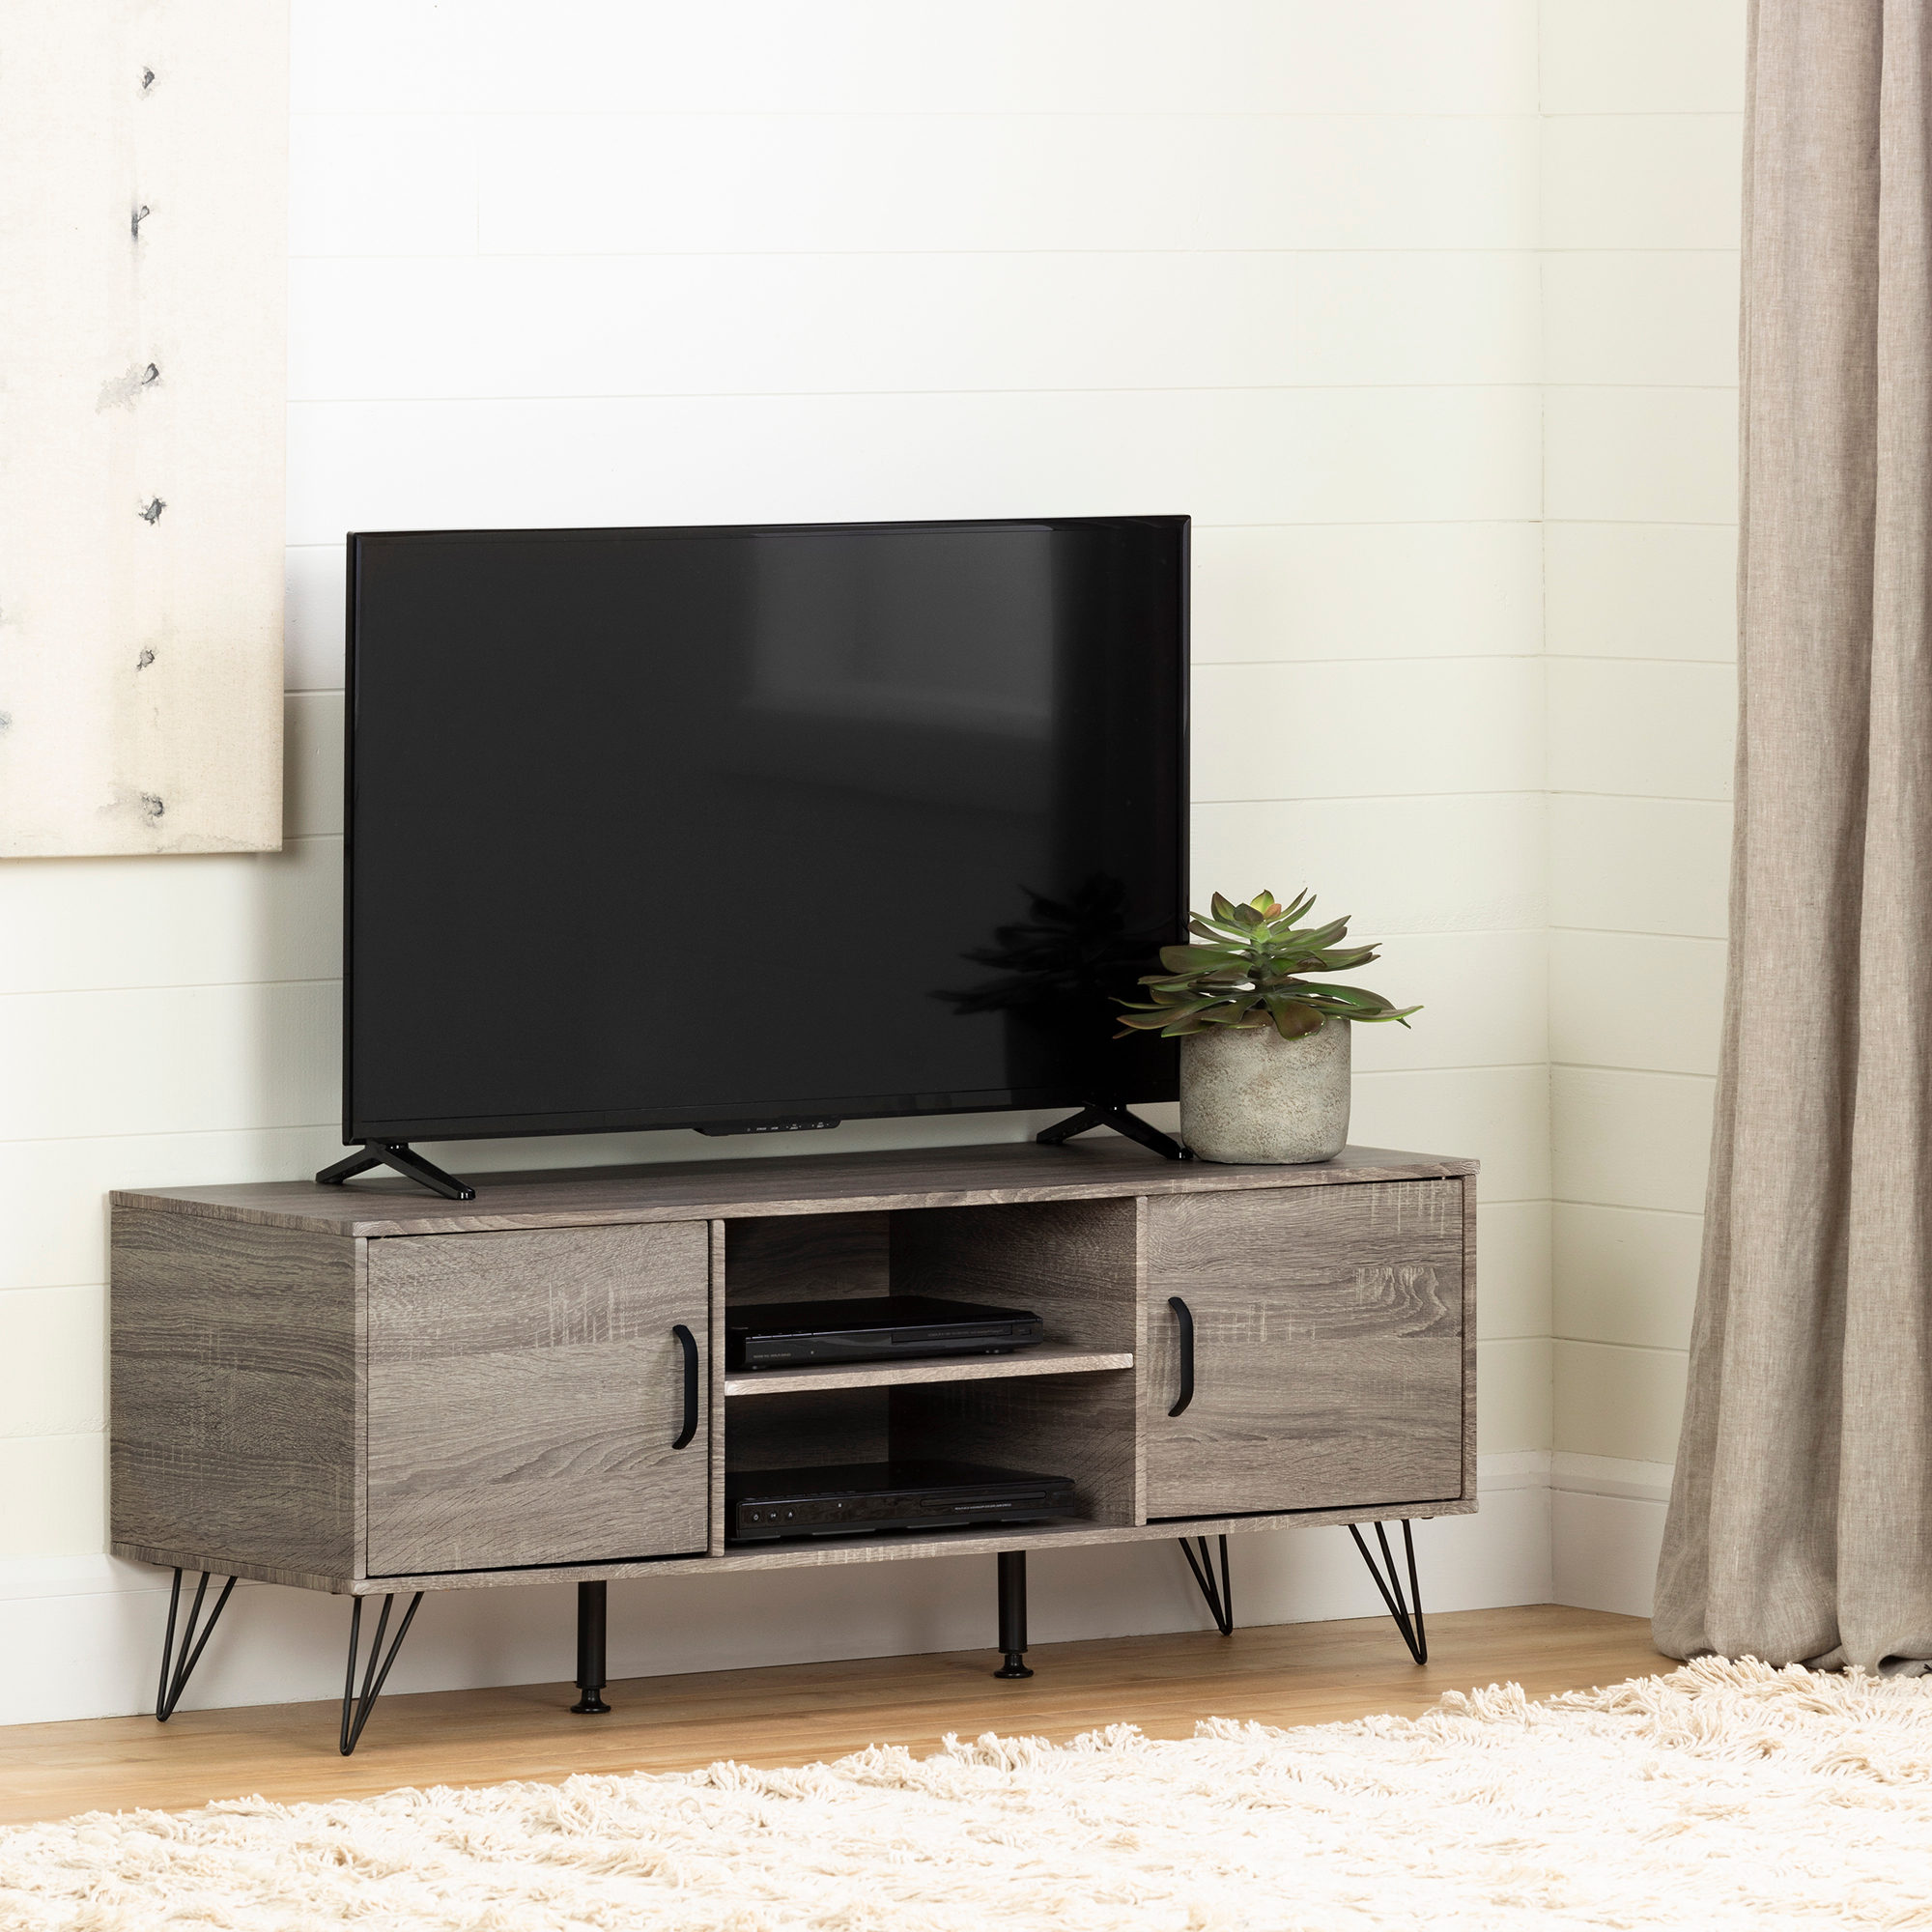 South Shore Evane Tv Stands With Doors In Oak Camel For Most Recent South Shore Evane Tv Stand With Doors For Tvs Up To  (View 2 of 10)